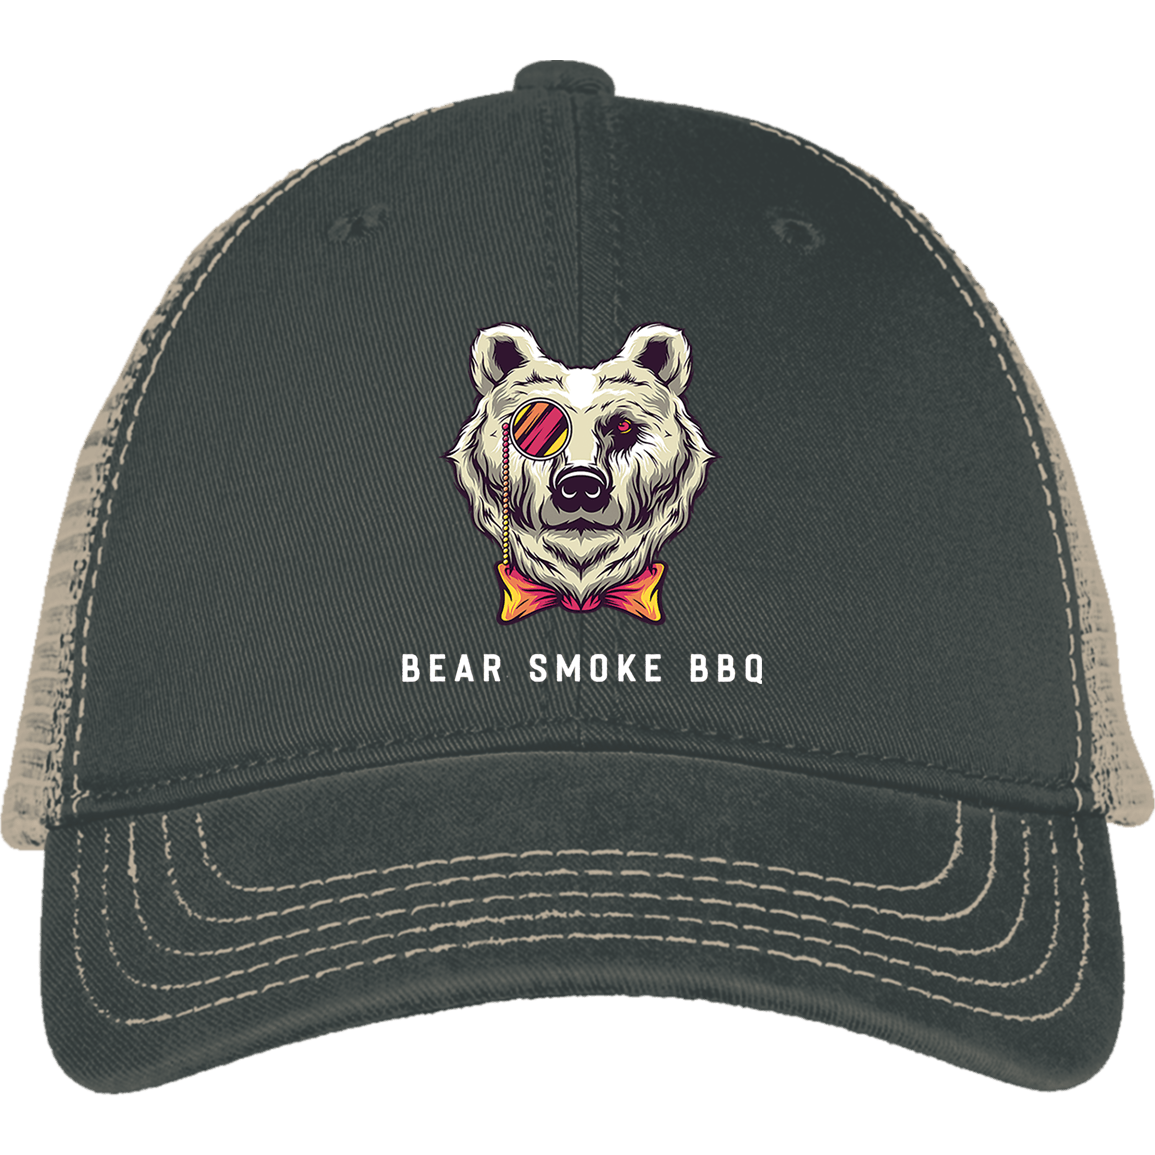 Bear Smoke Mesh Back Cap - Bear Smoke BBQ